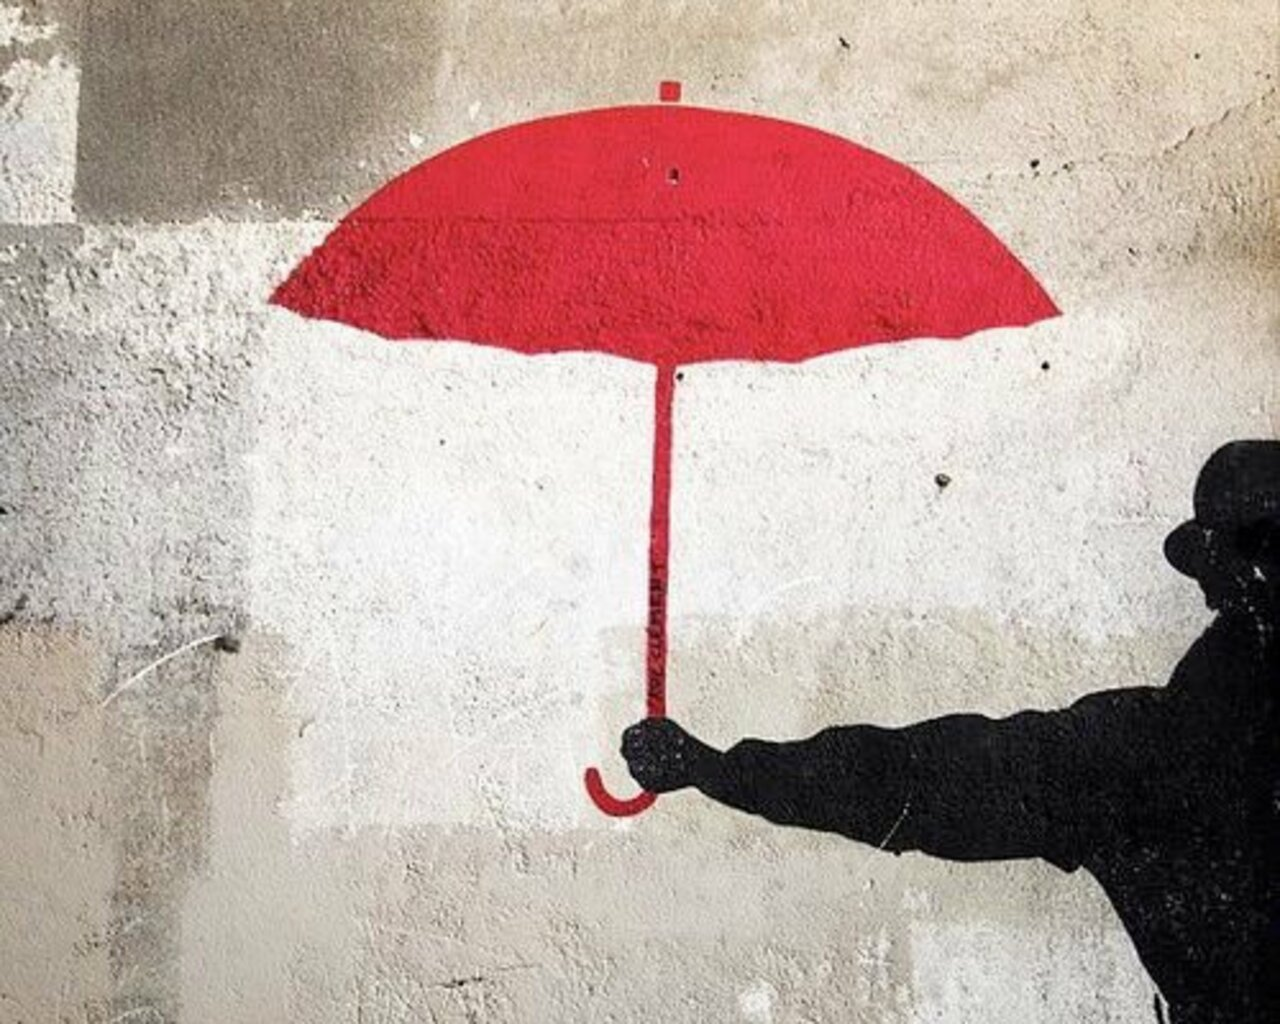 Mr. Umbrella – #Minimalism #StreetArt – Be ▲rtist – Be ▲rt Magazine http://crwd.fr/2k3DaJA https://t.co/VotaJqZPyz